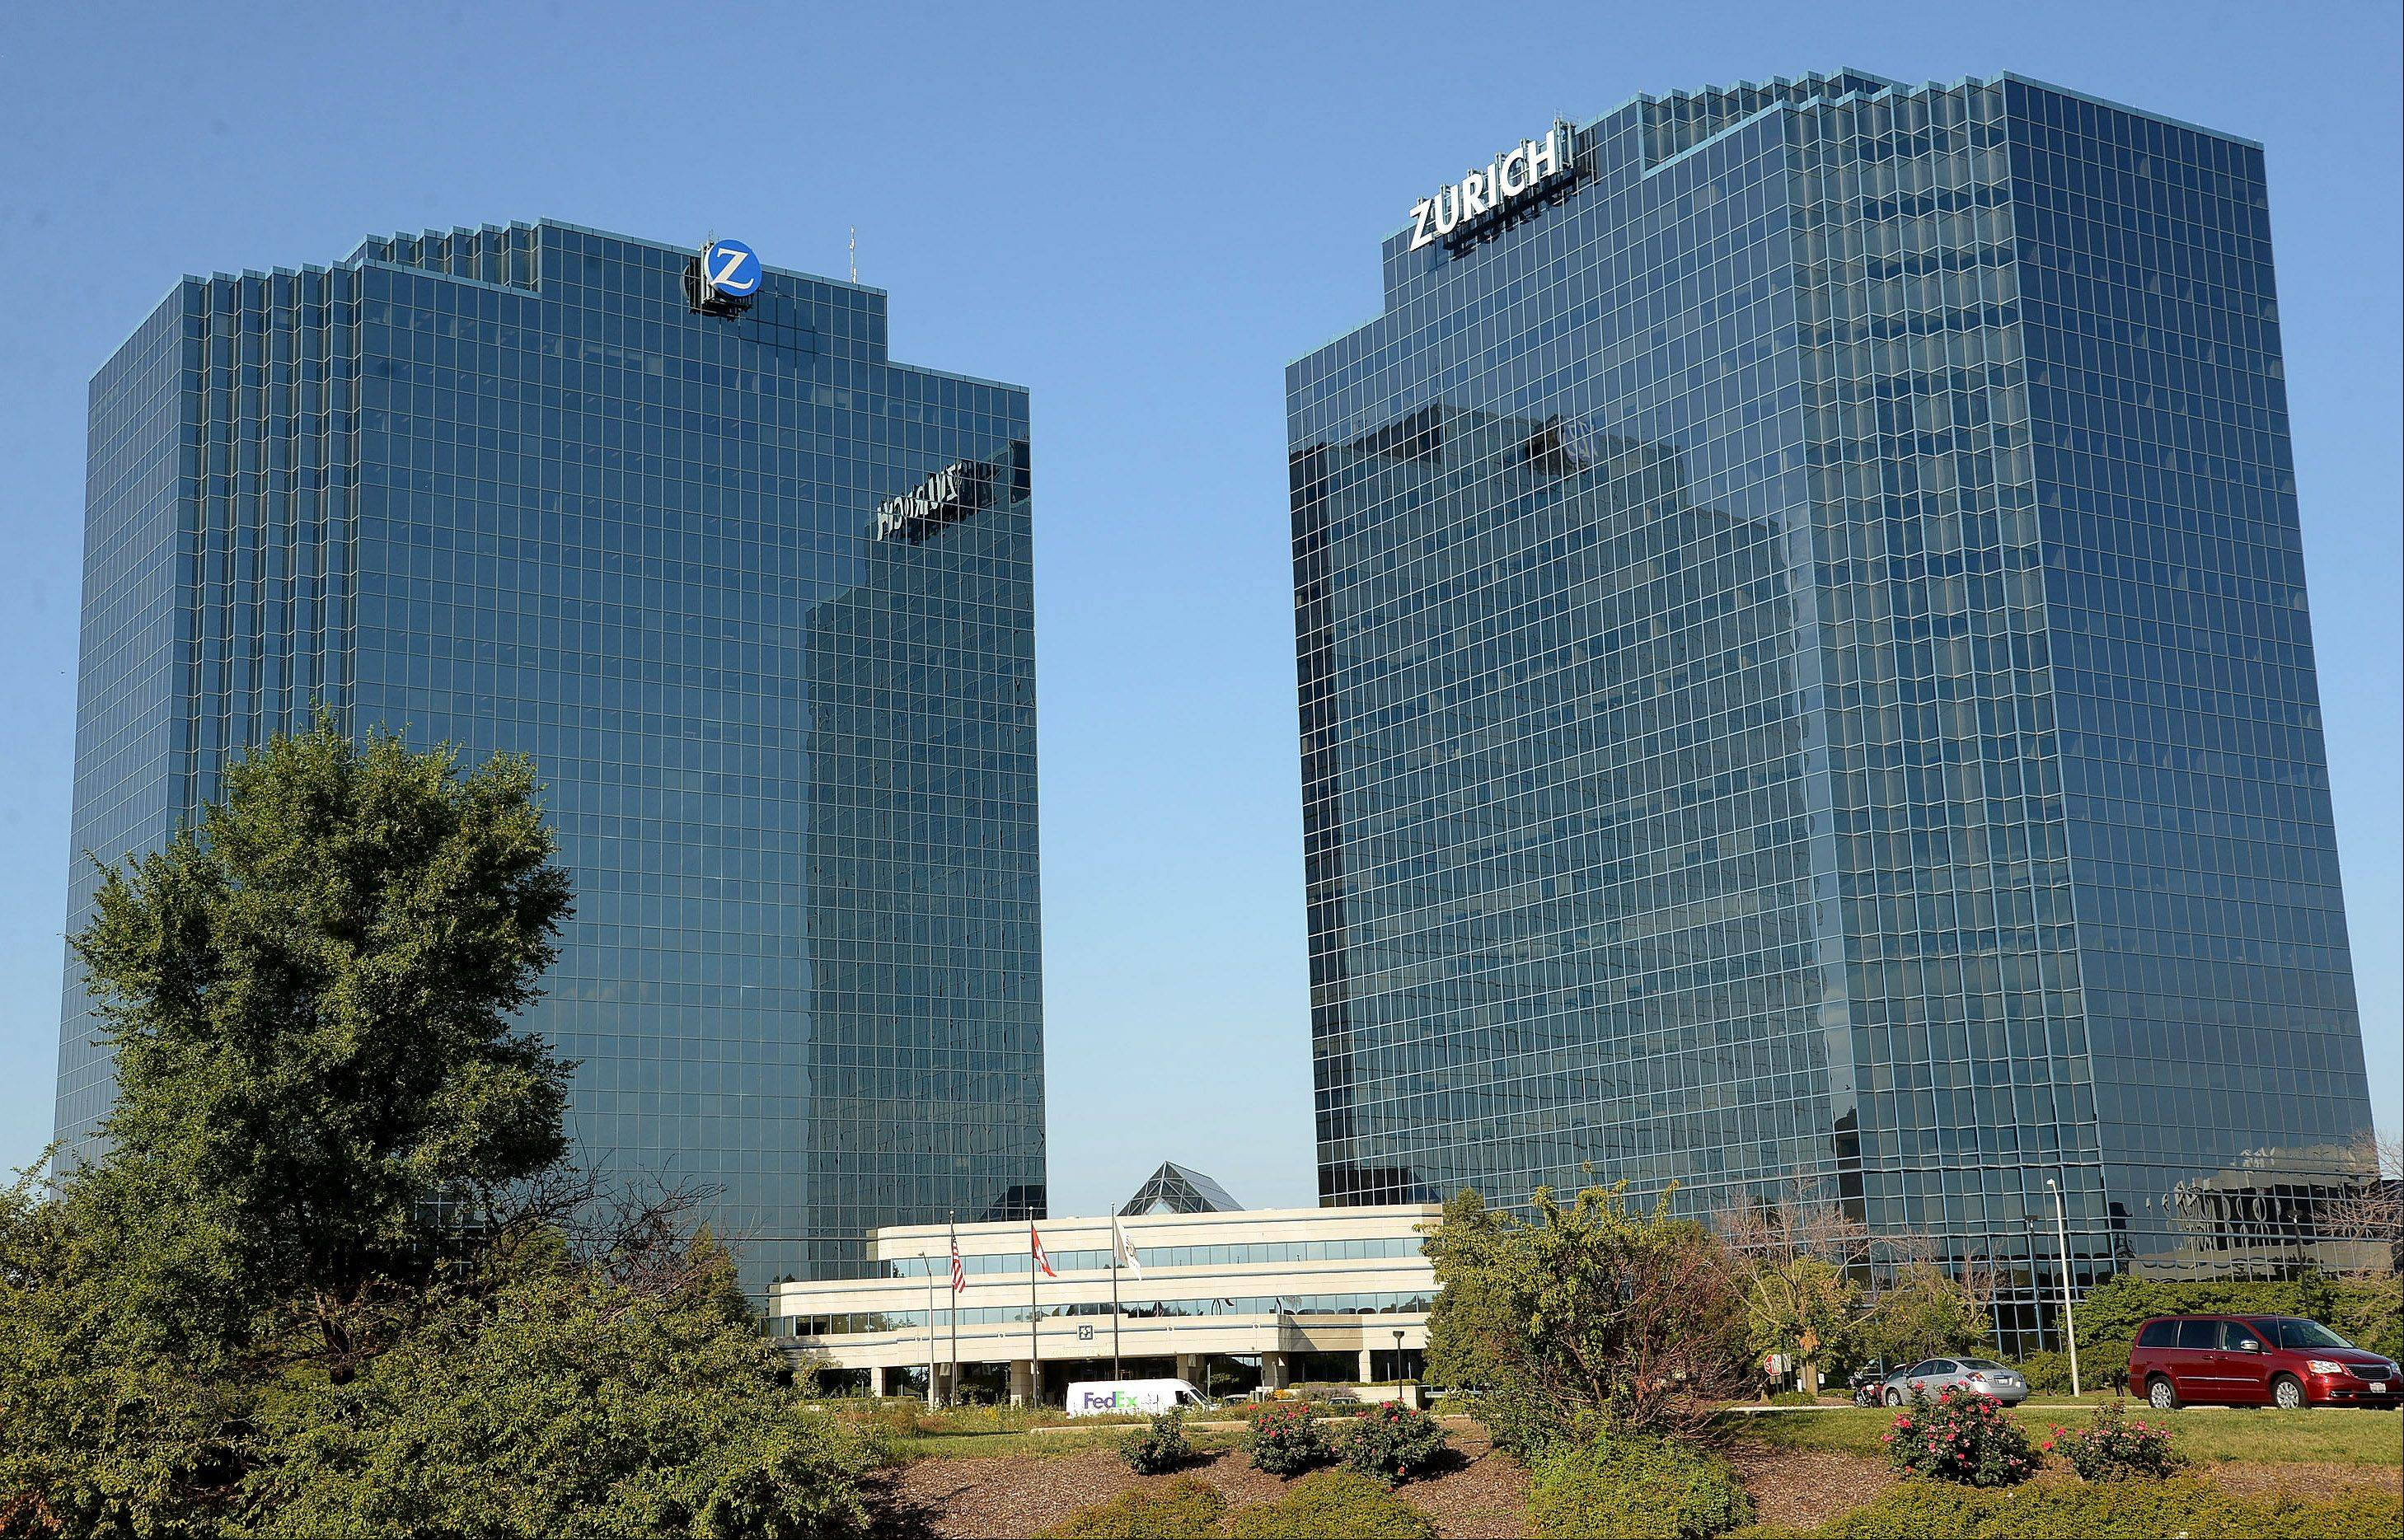 Zurich Insurance is planning to move out of its iconic Zurich Towers in Schaumburg to a new facility on the Motorola Solutions campus at Algonquin and Meacham roads. Groundbreaking is expected next year.